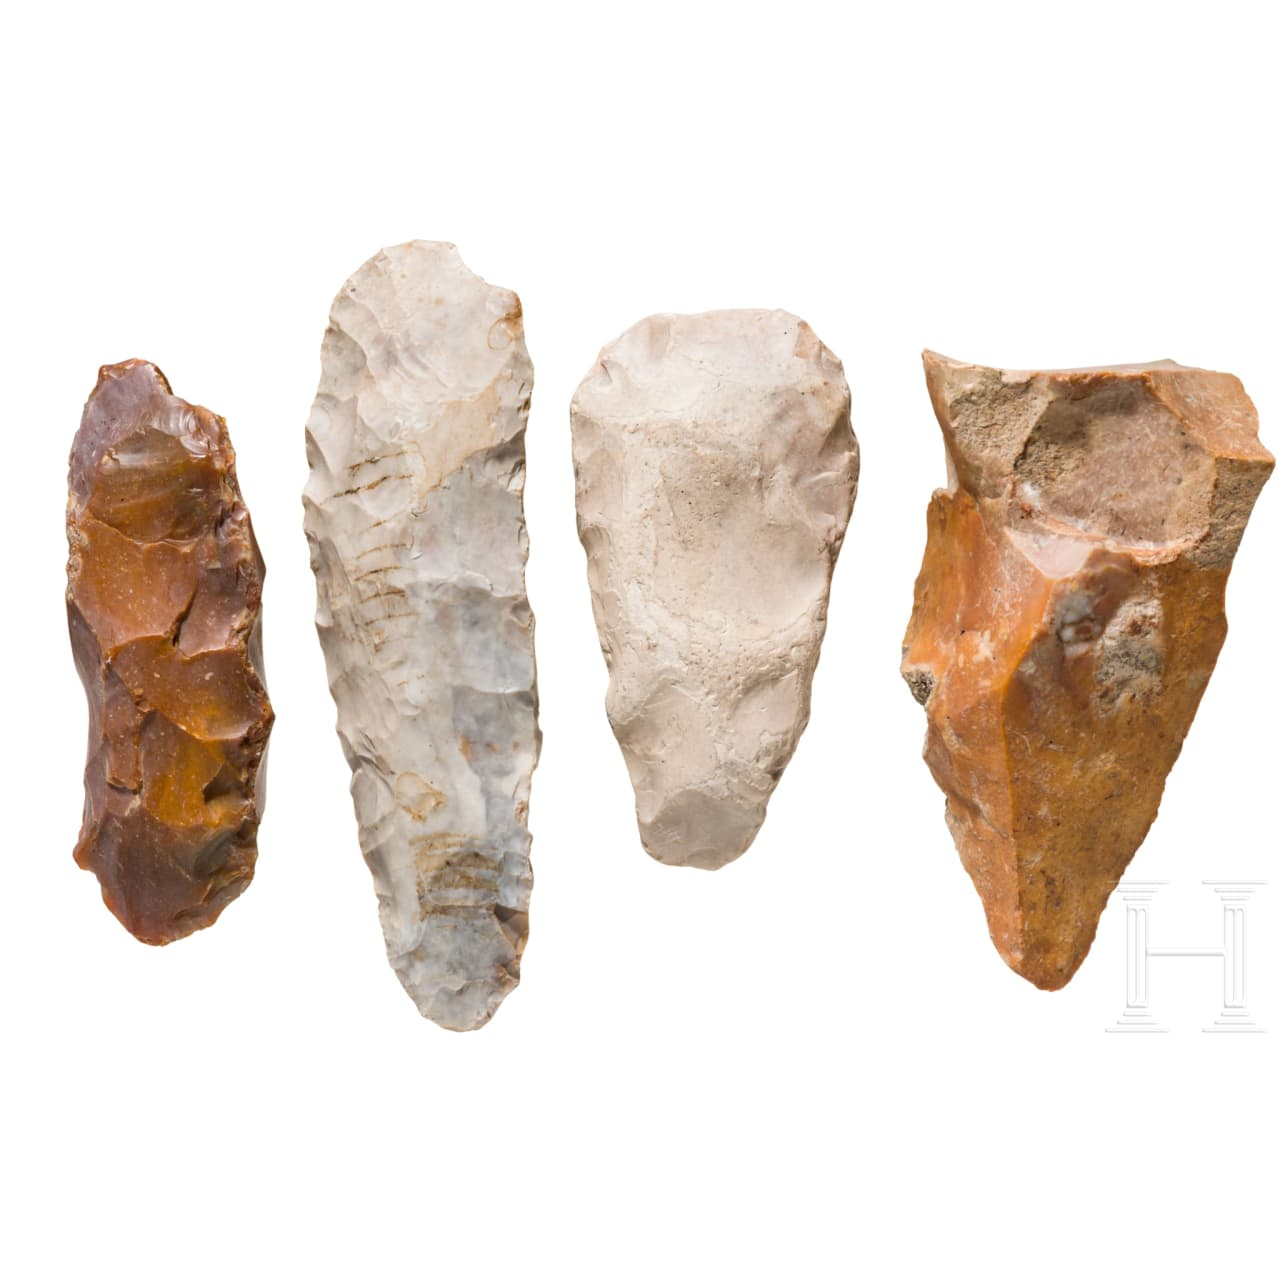 Four Central European Paleolithic stone tools